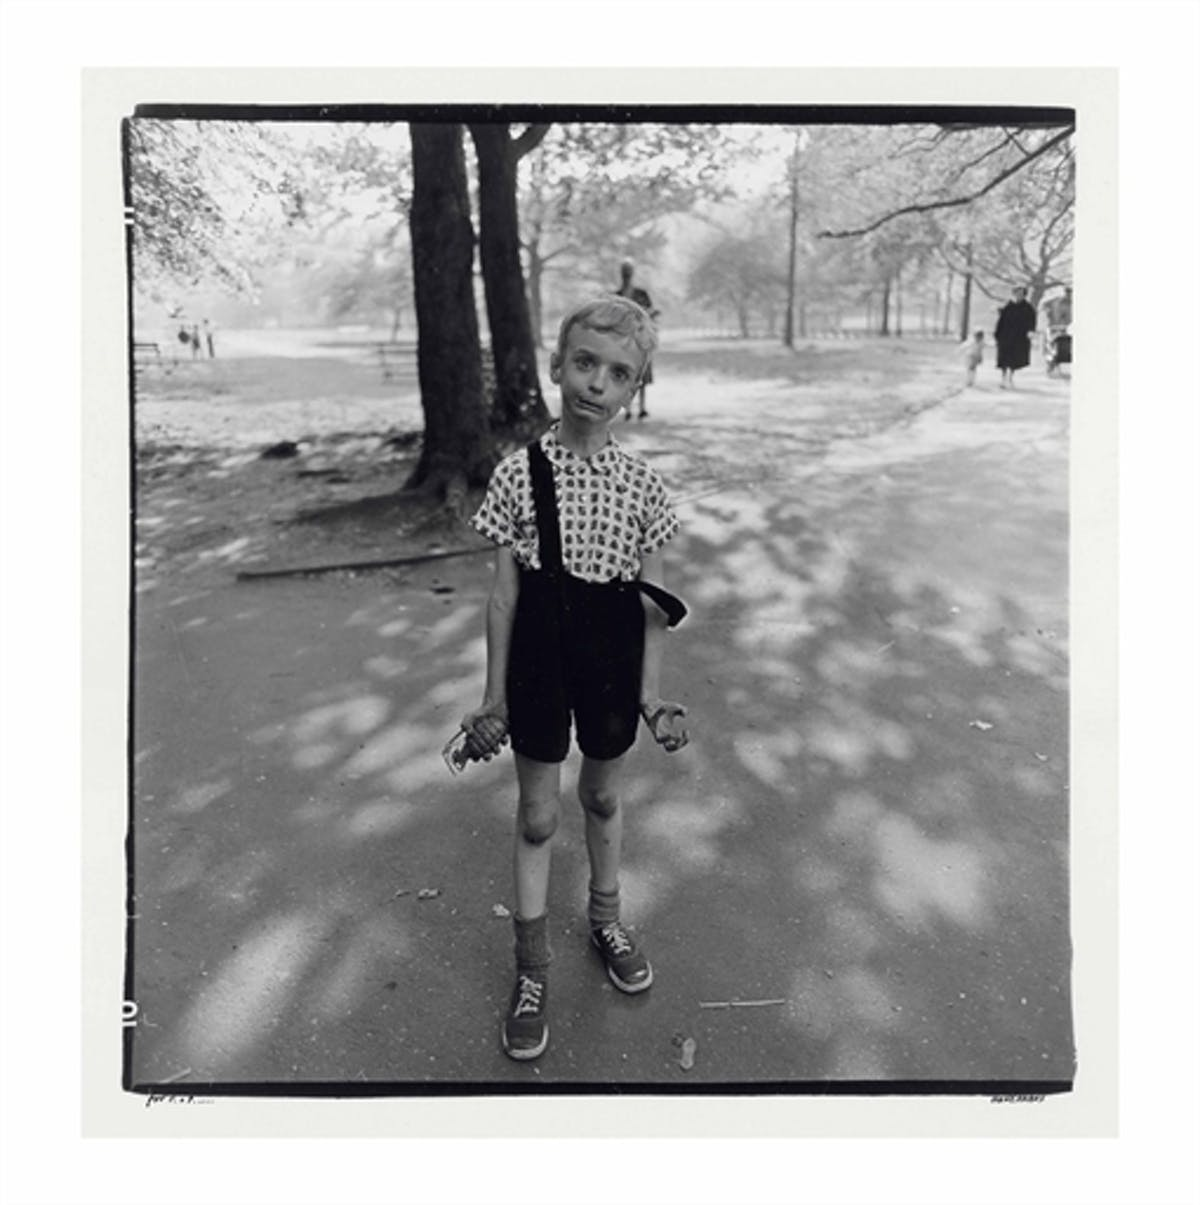 """Diane Arbus, """"Child with a toy hand grenade in Central Park, N.Y.C., 1962"""". Foto: Christie's."""